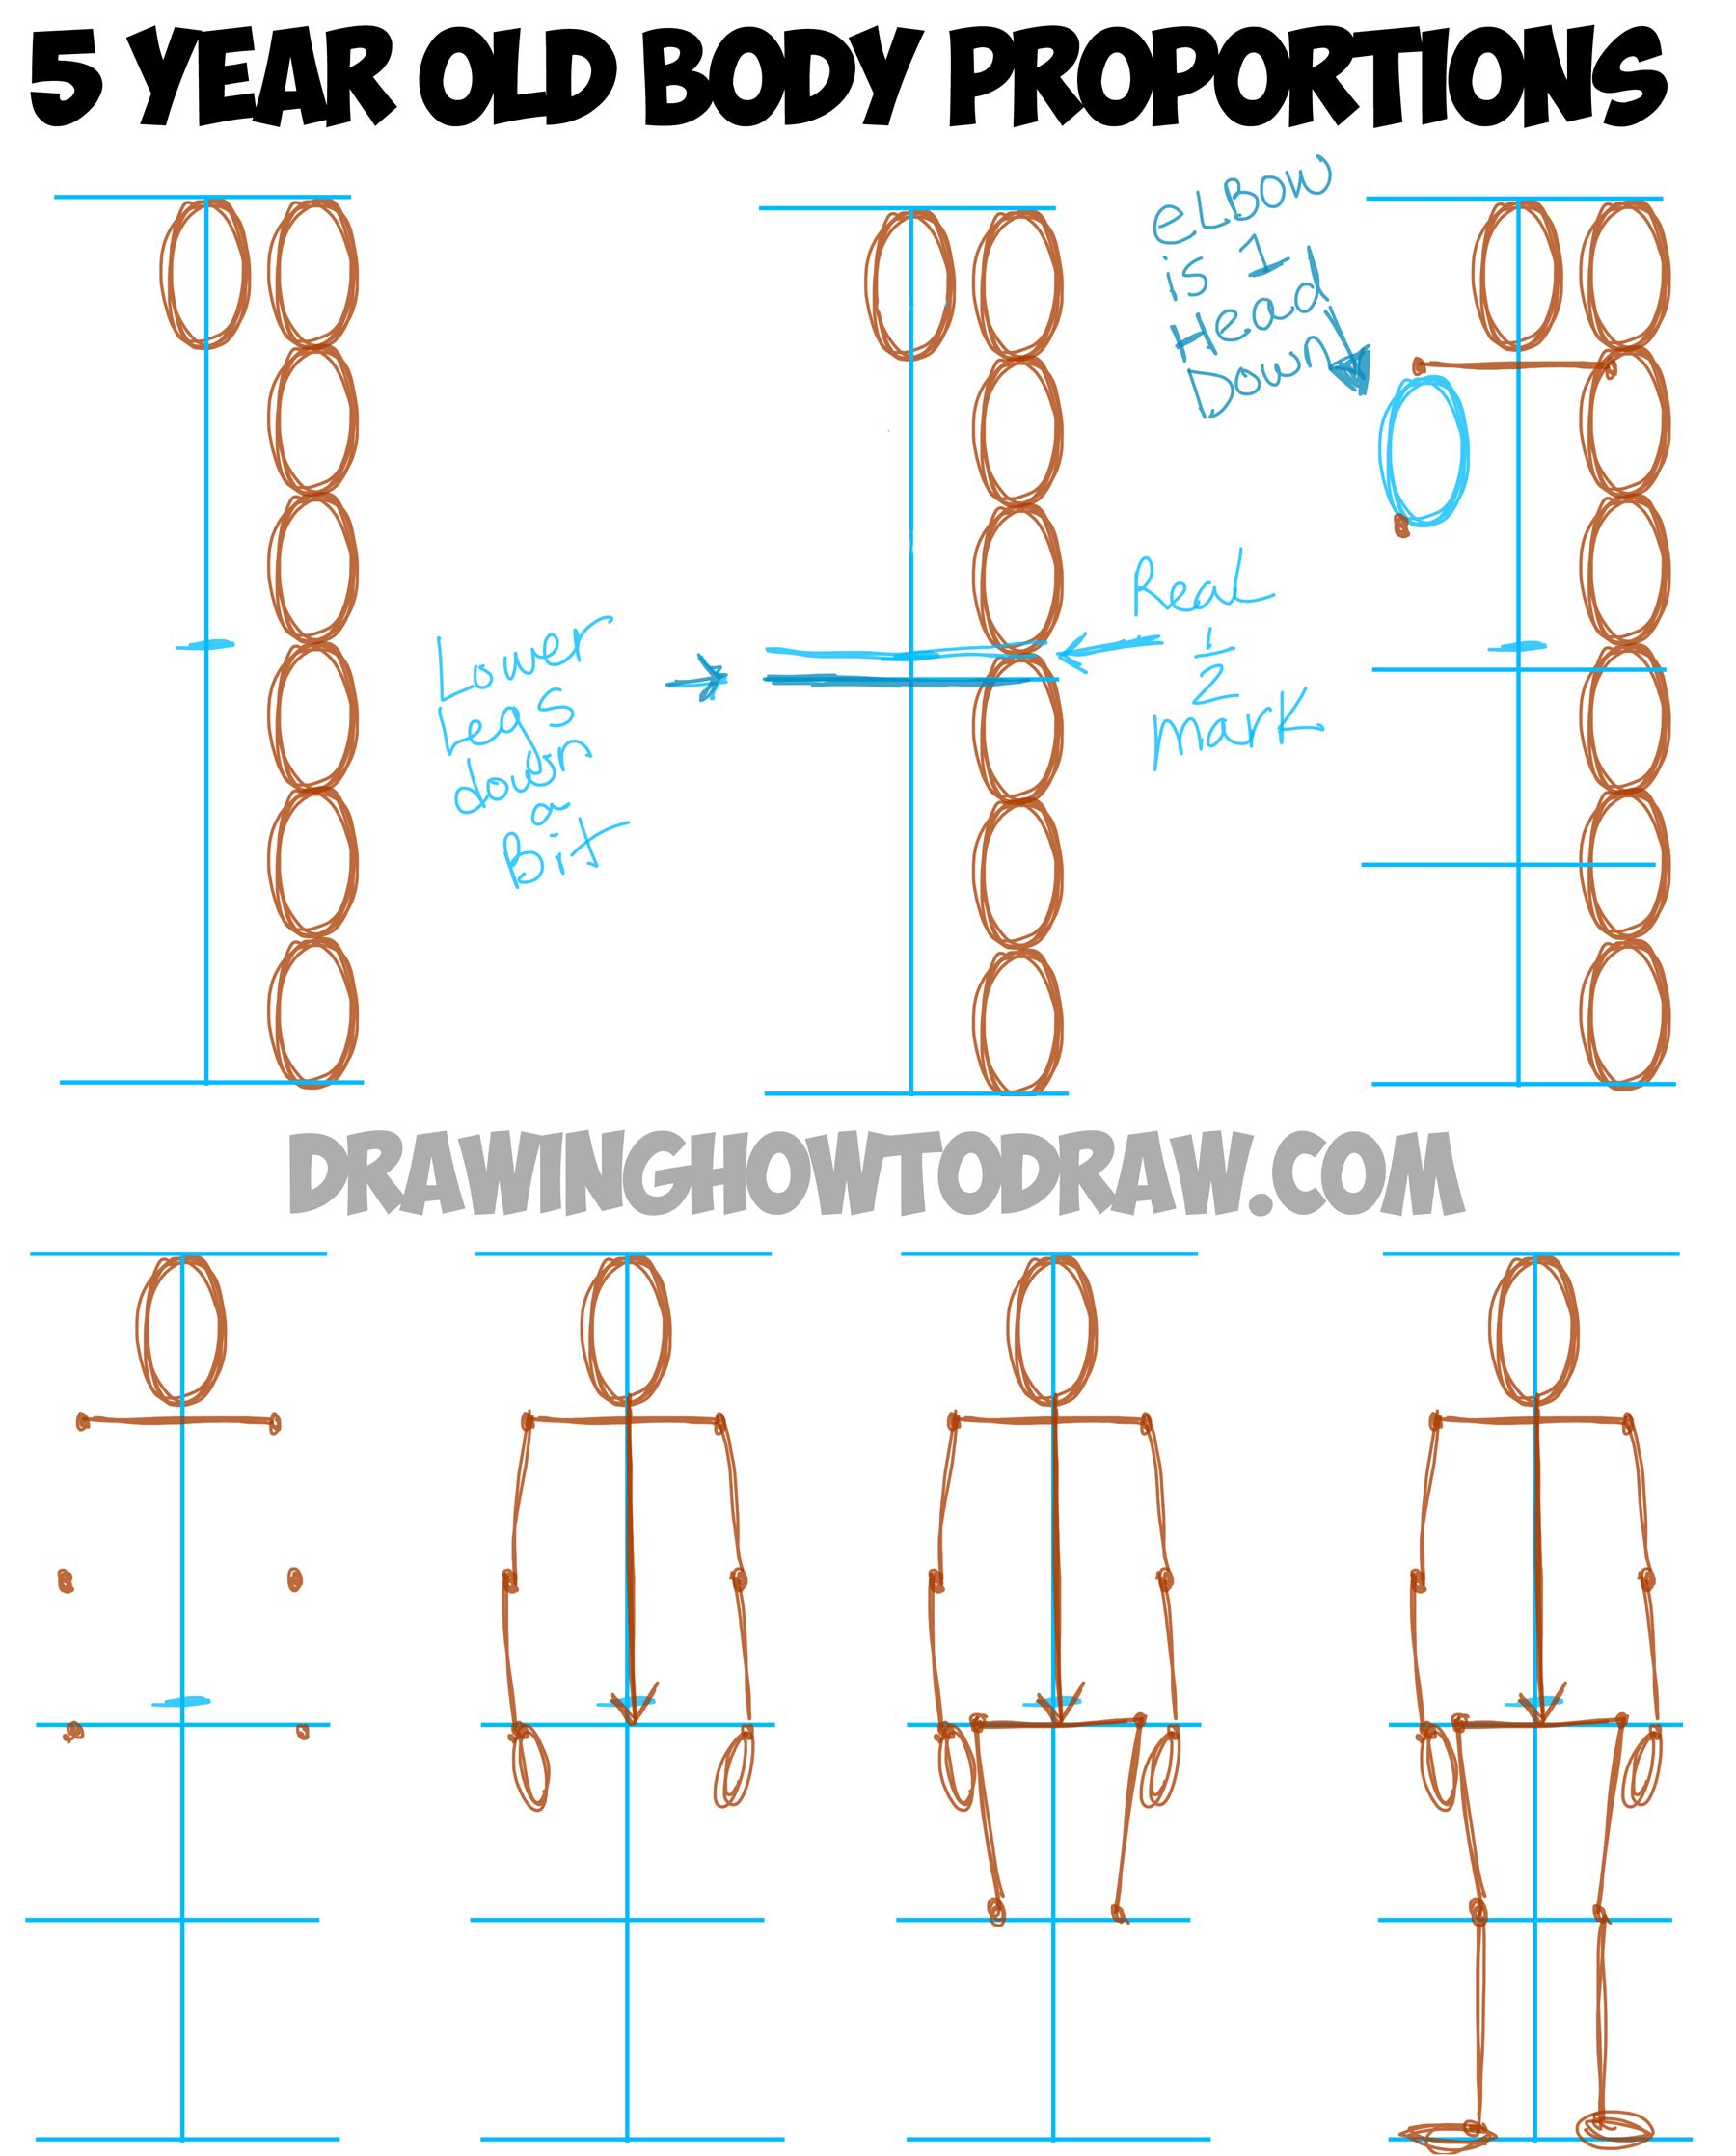 Learn How to Draw Human Figures in Correct Proportions by Memorizing Stick  Figures - How to Draw Step by Step Drawing Tutorials